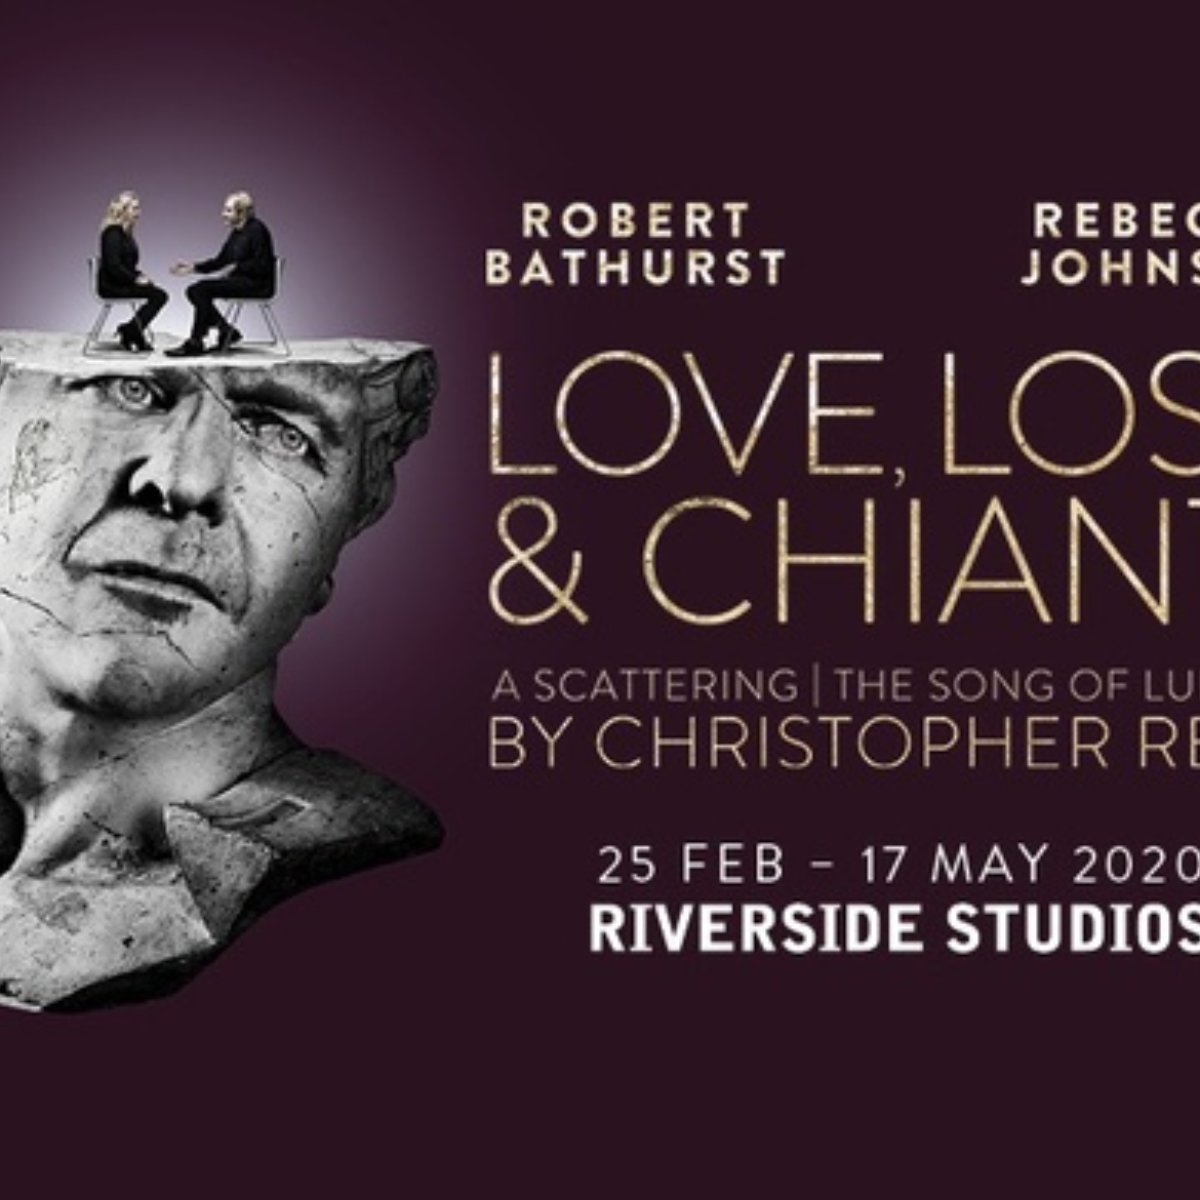 Love, Loss & Chianti Images